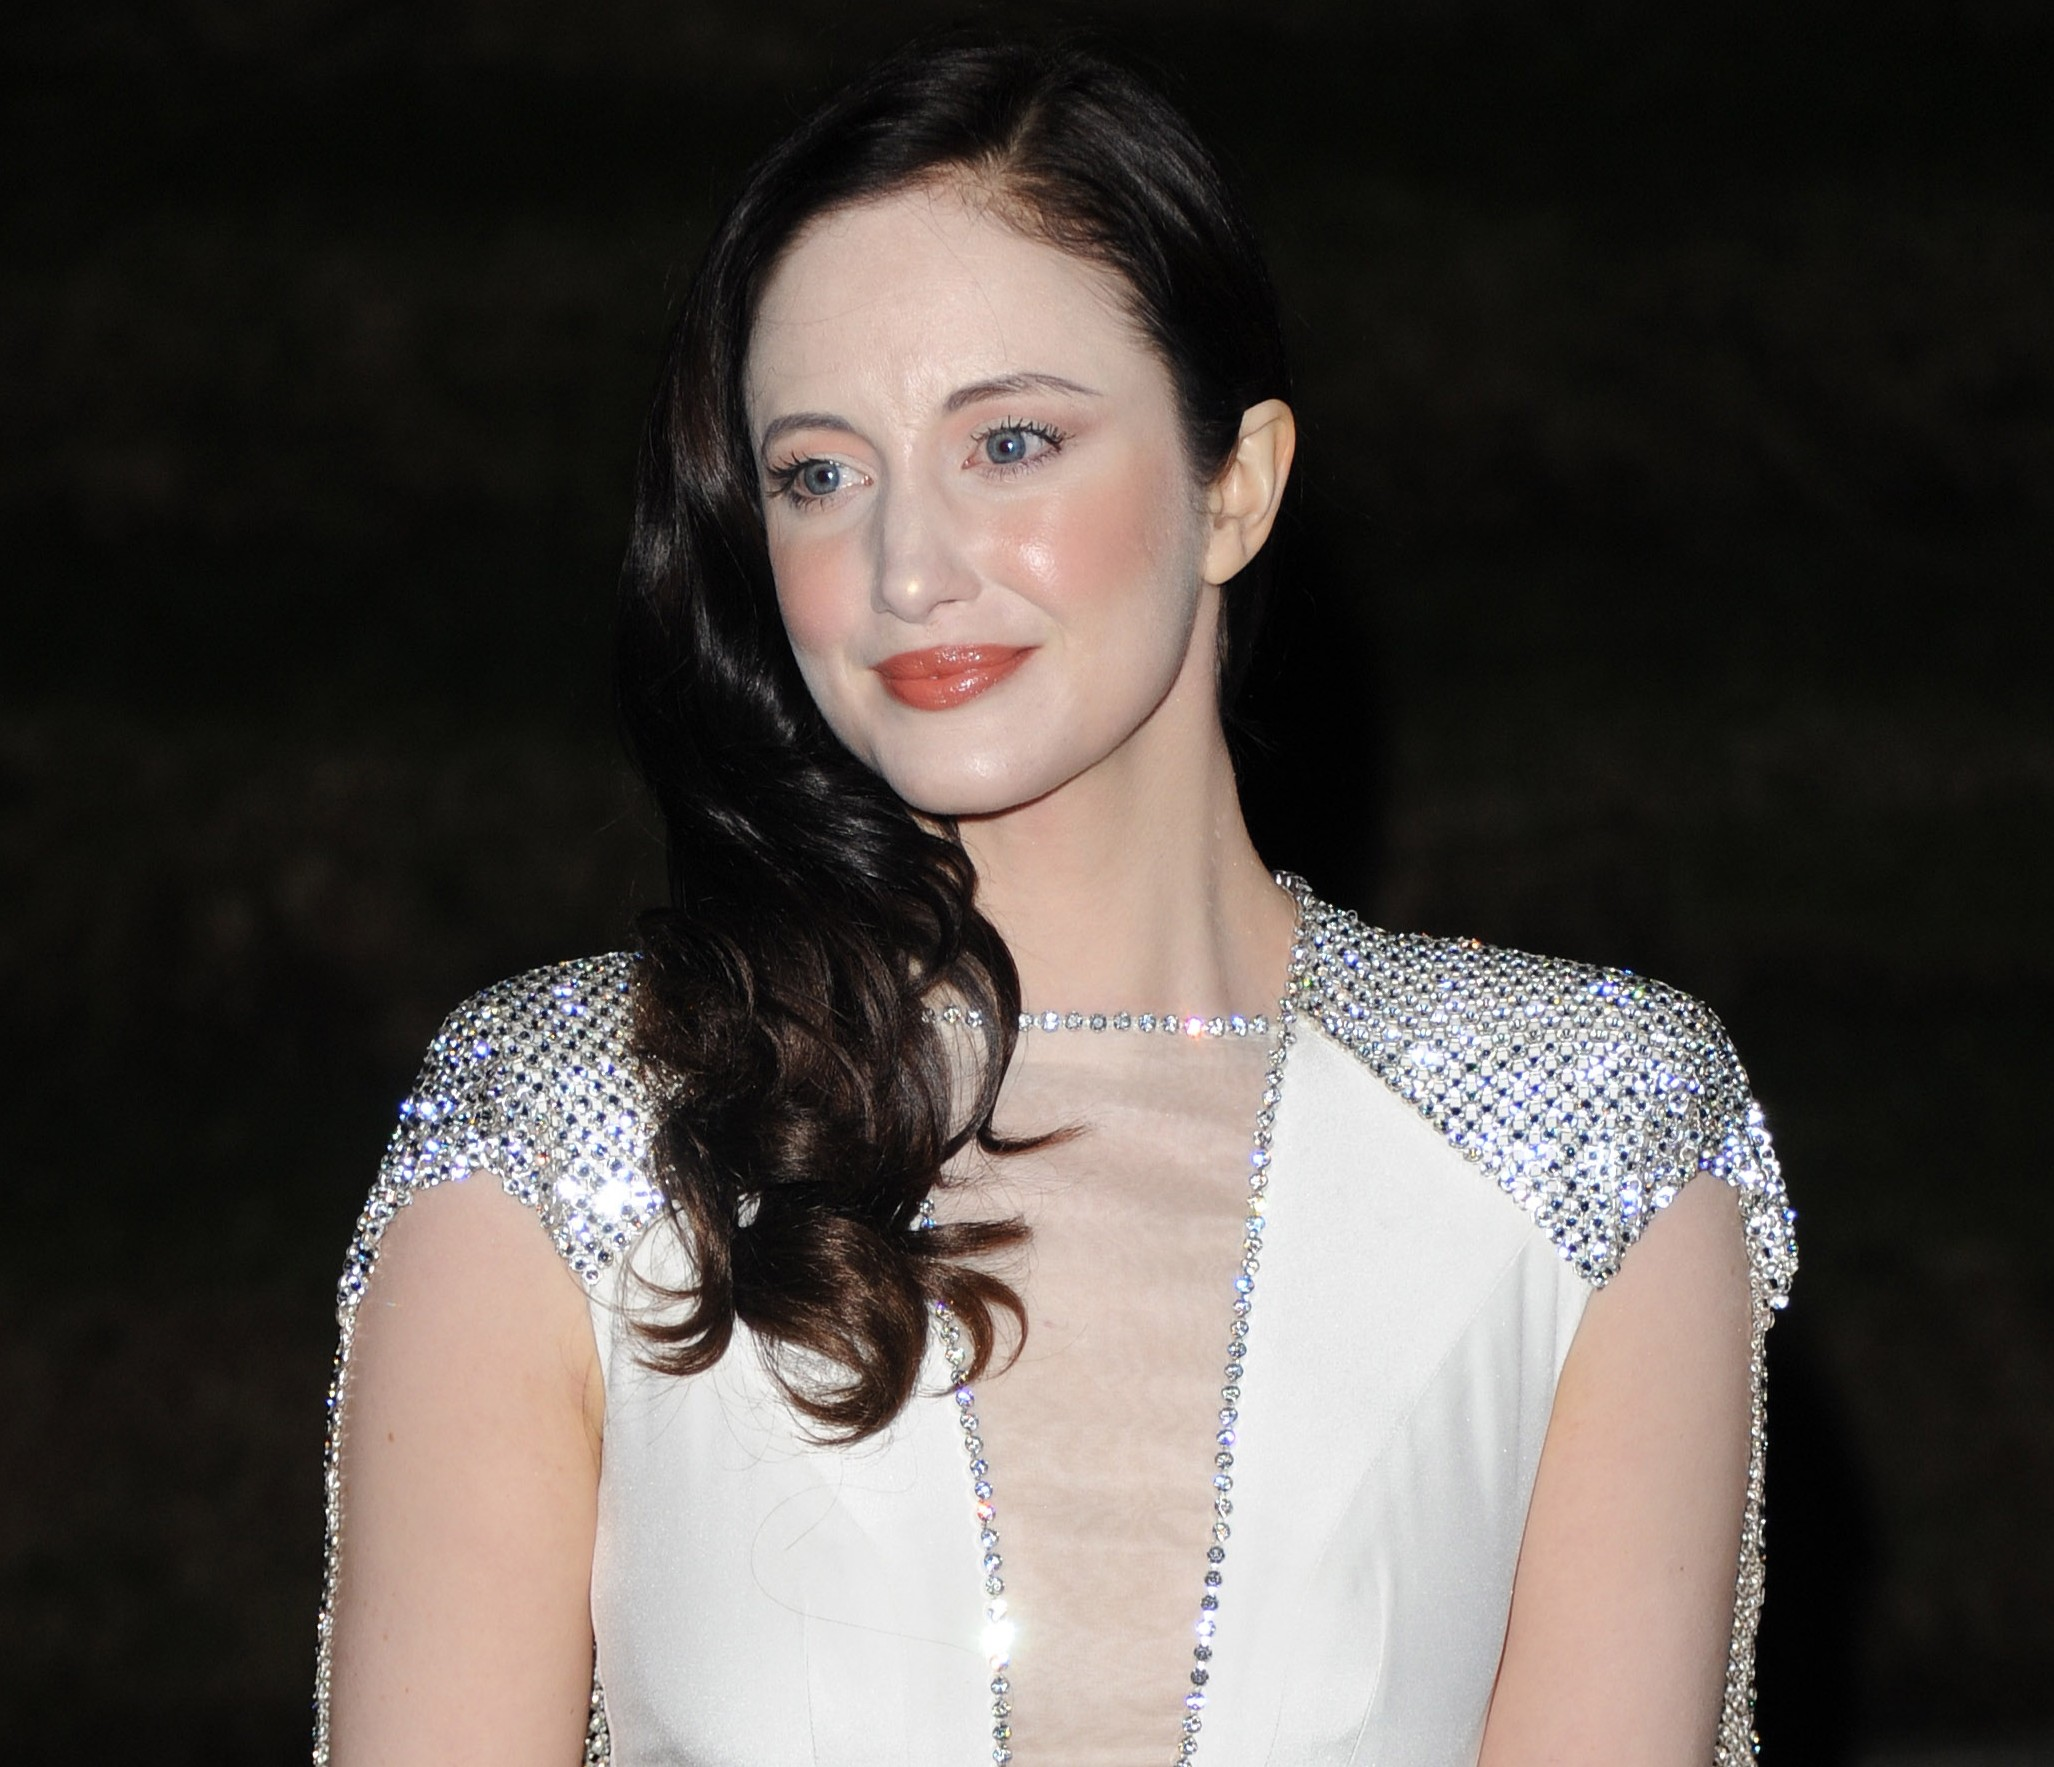 Andrea Riseborough: I really respect how Madonna allows her femininity to drive her